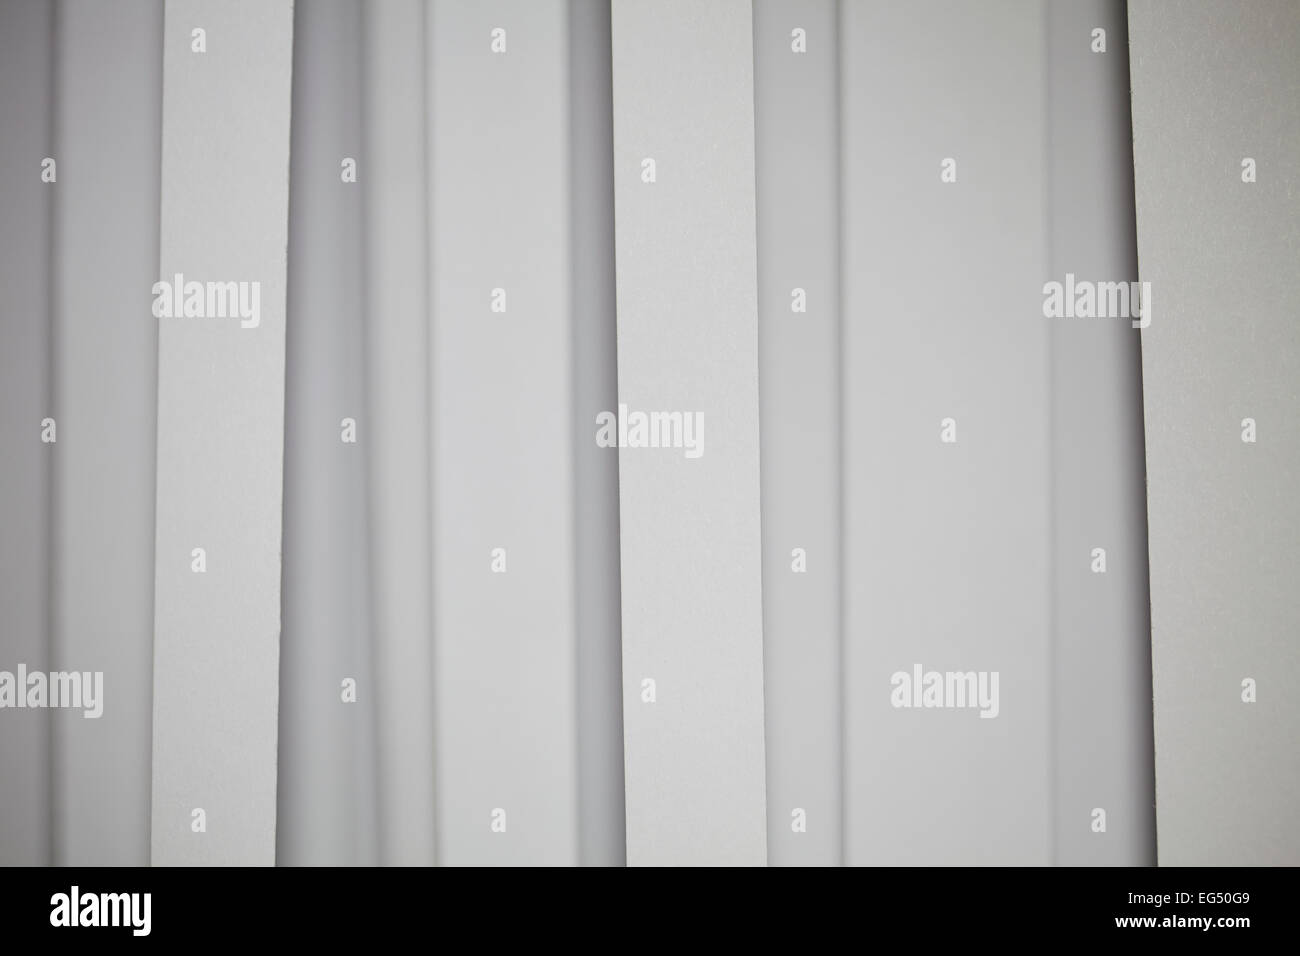 Minimal background made from a vertical white strip pattern - Stock Image